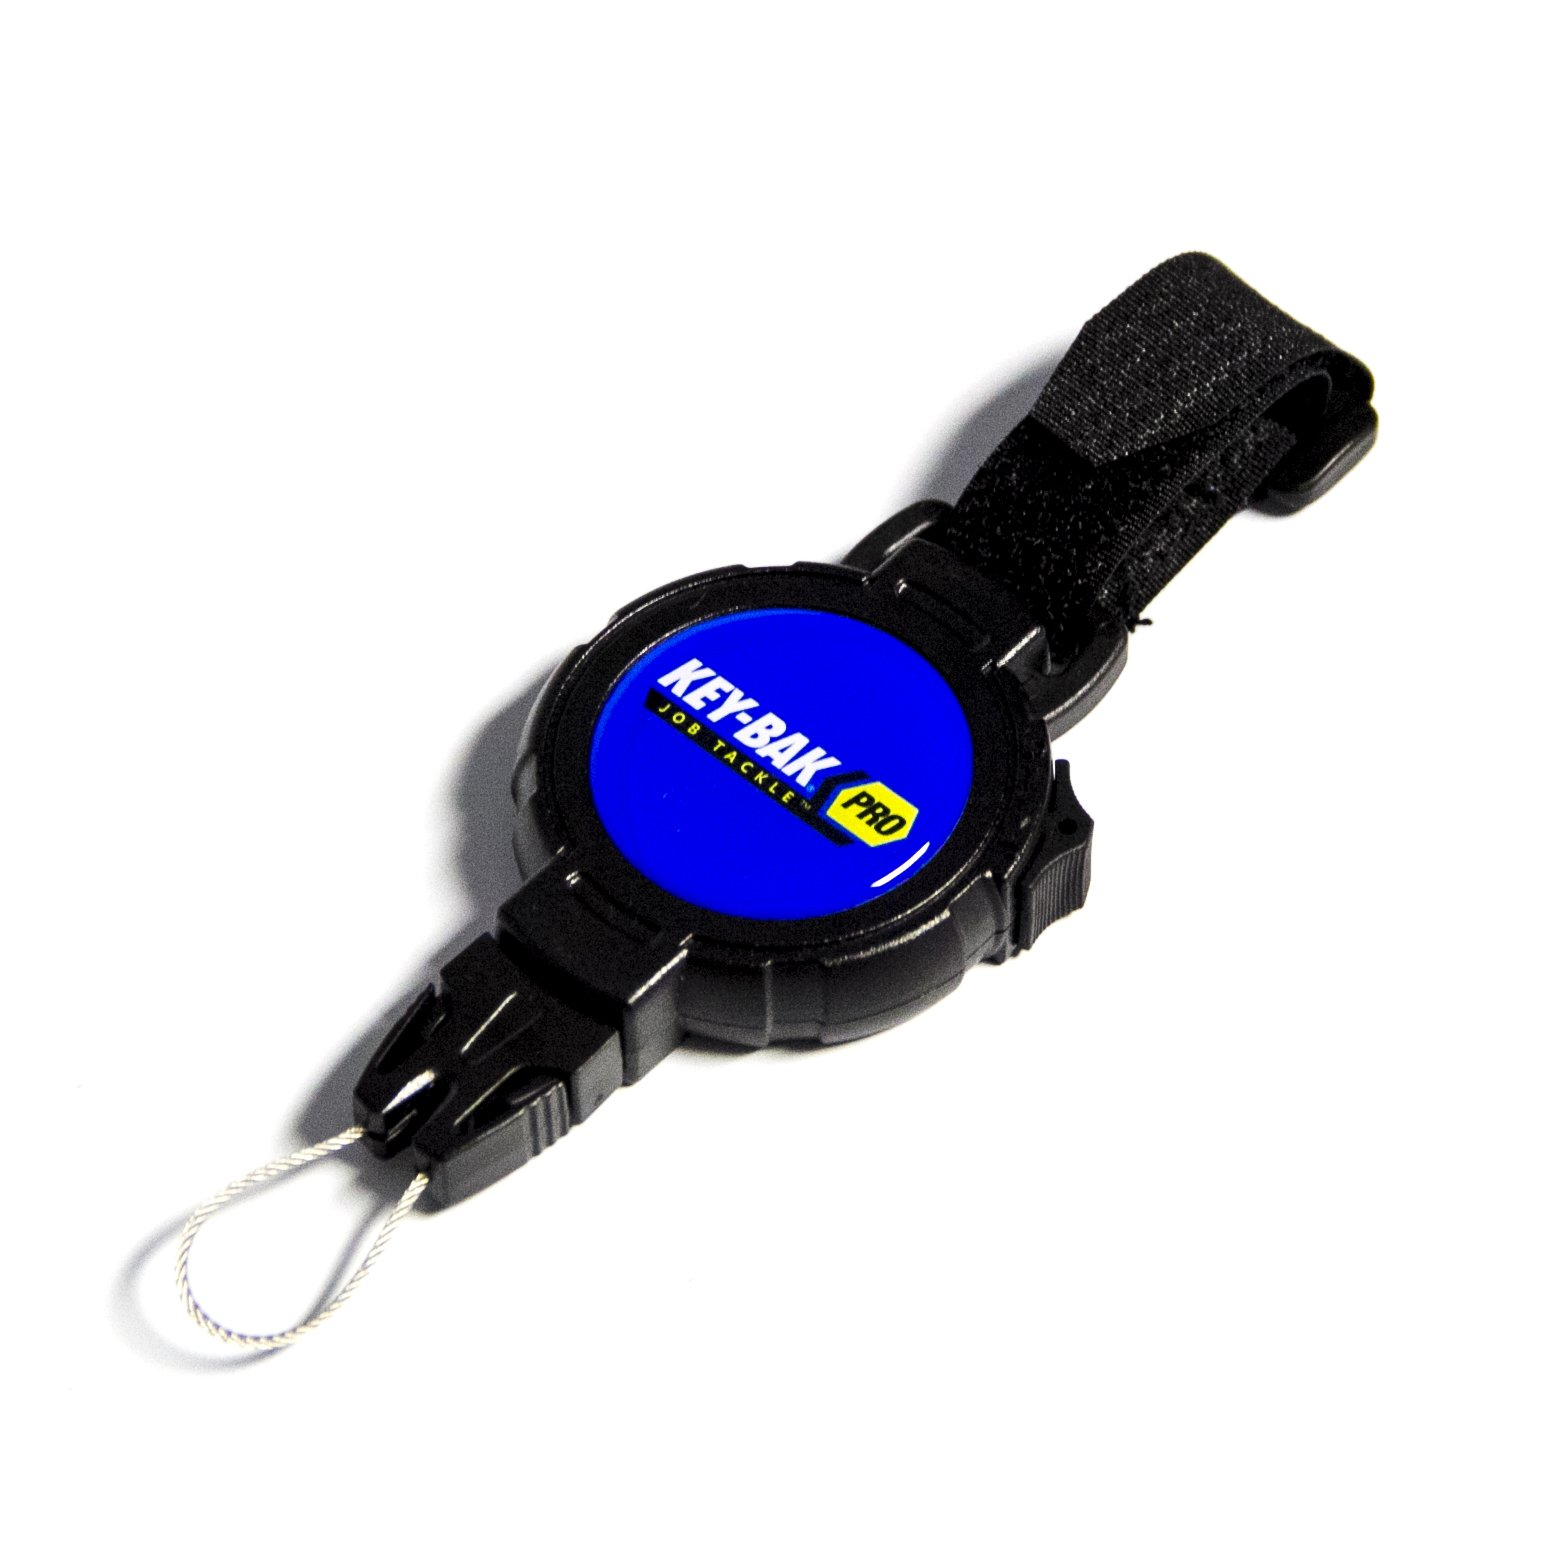 KEY-BAK Pro JobTackle Any Gear Tether with a 48'' Kevlar Tether, 8 oz. Retraction, Tether Lock, Any Gear End Fitting and Hook/Loop Strap Attachment